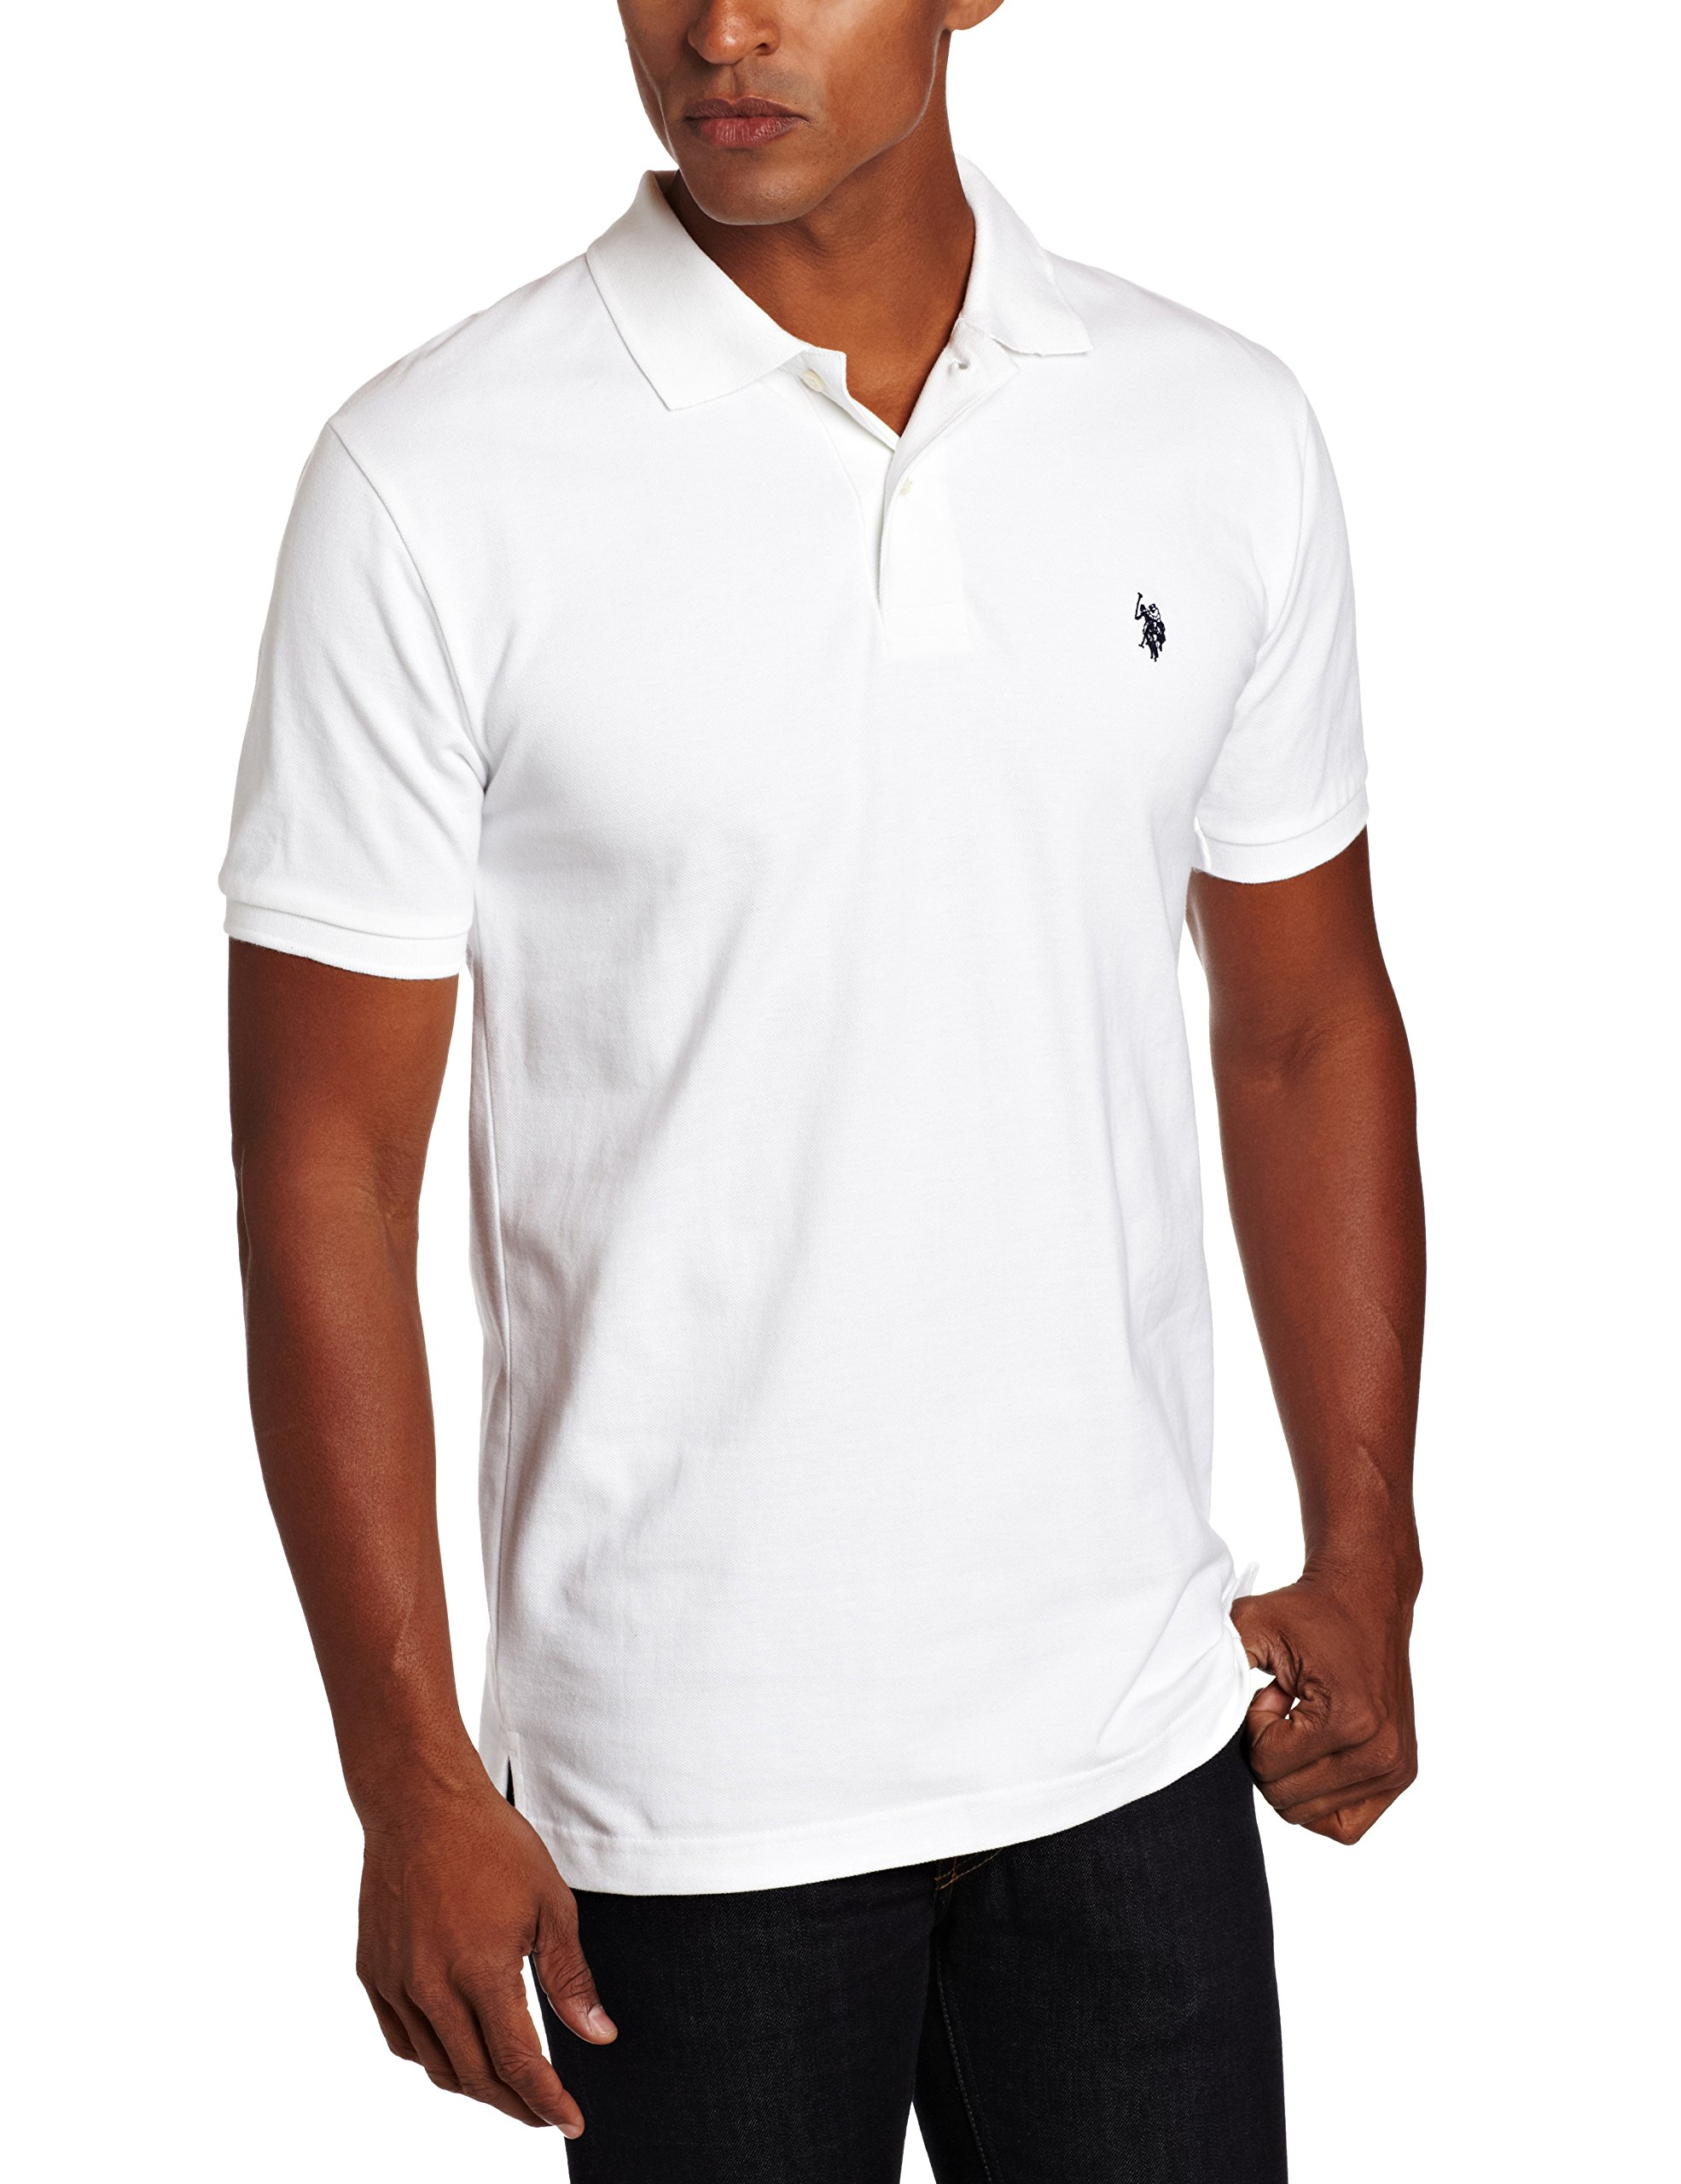 U.S. Polo Assn. Men's Classic Polo Shirt, White, L